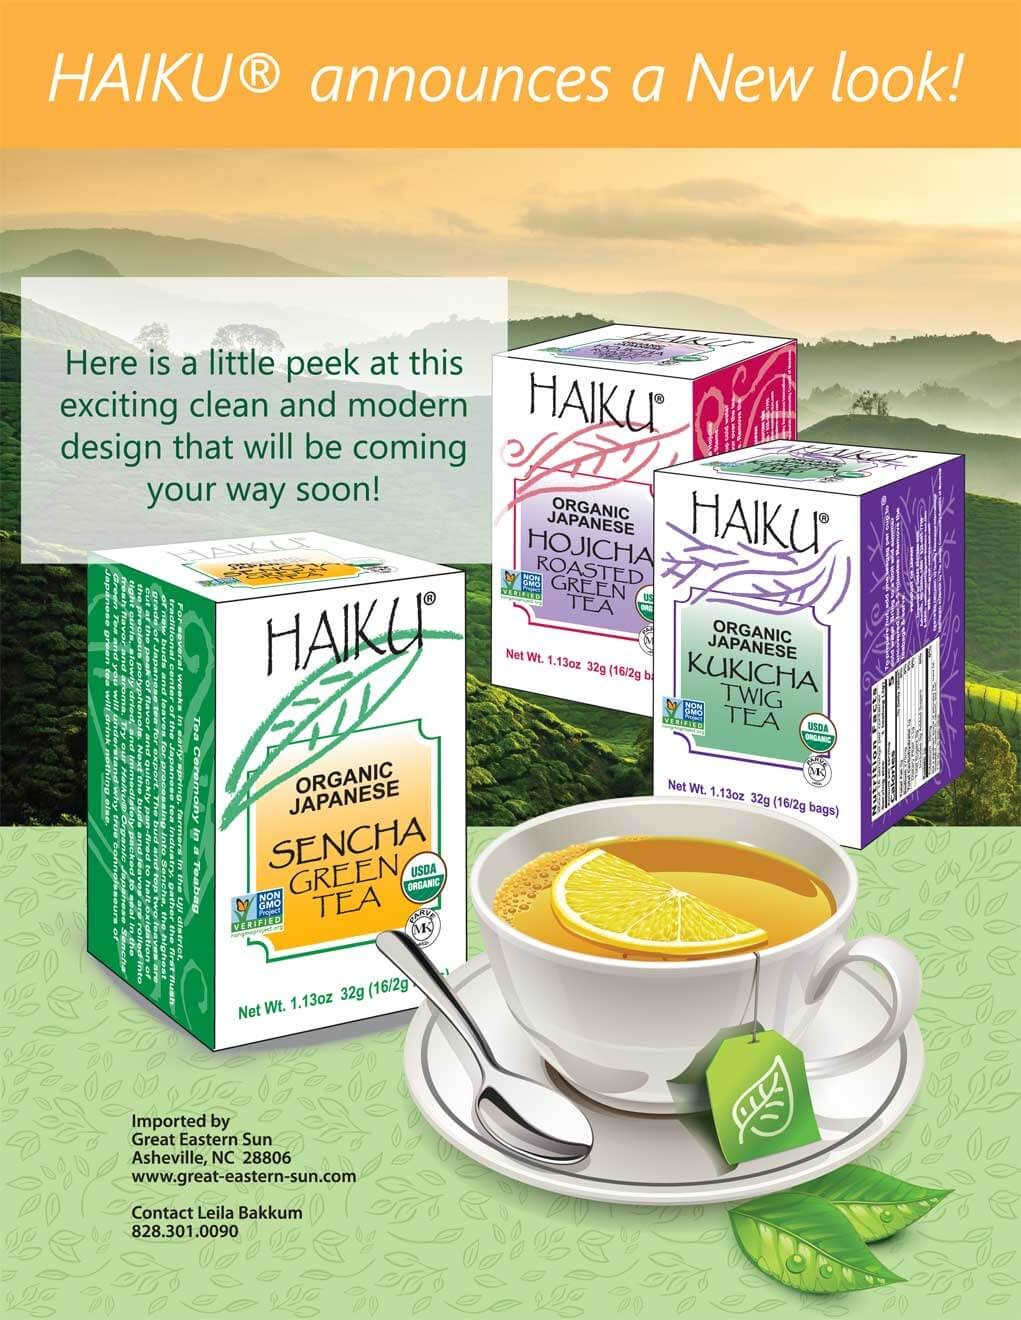 new-haiku-organic-japanese-teas-packaging